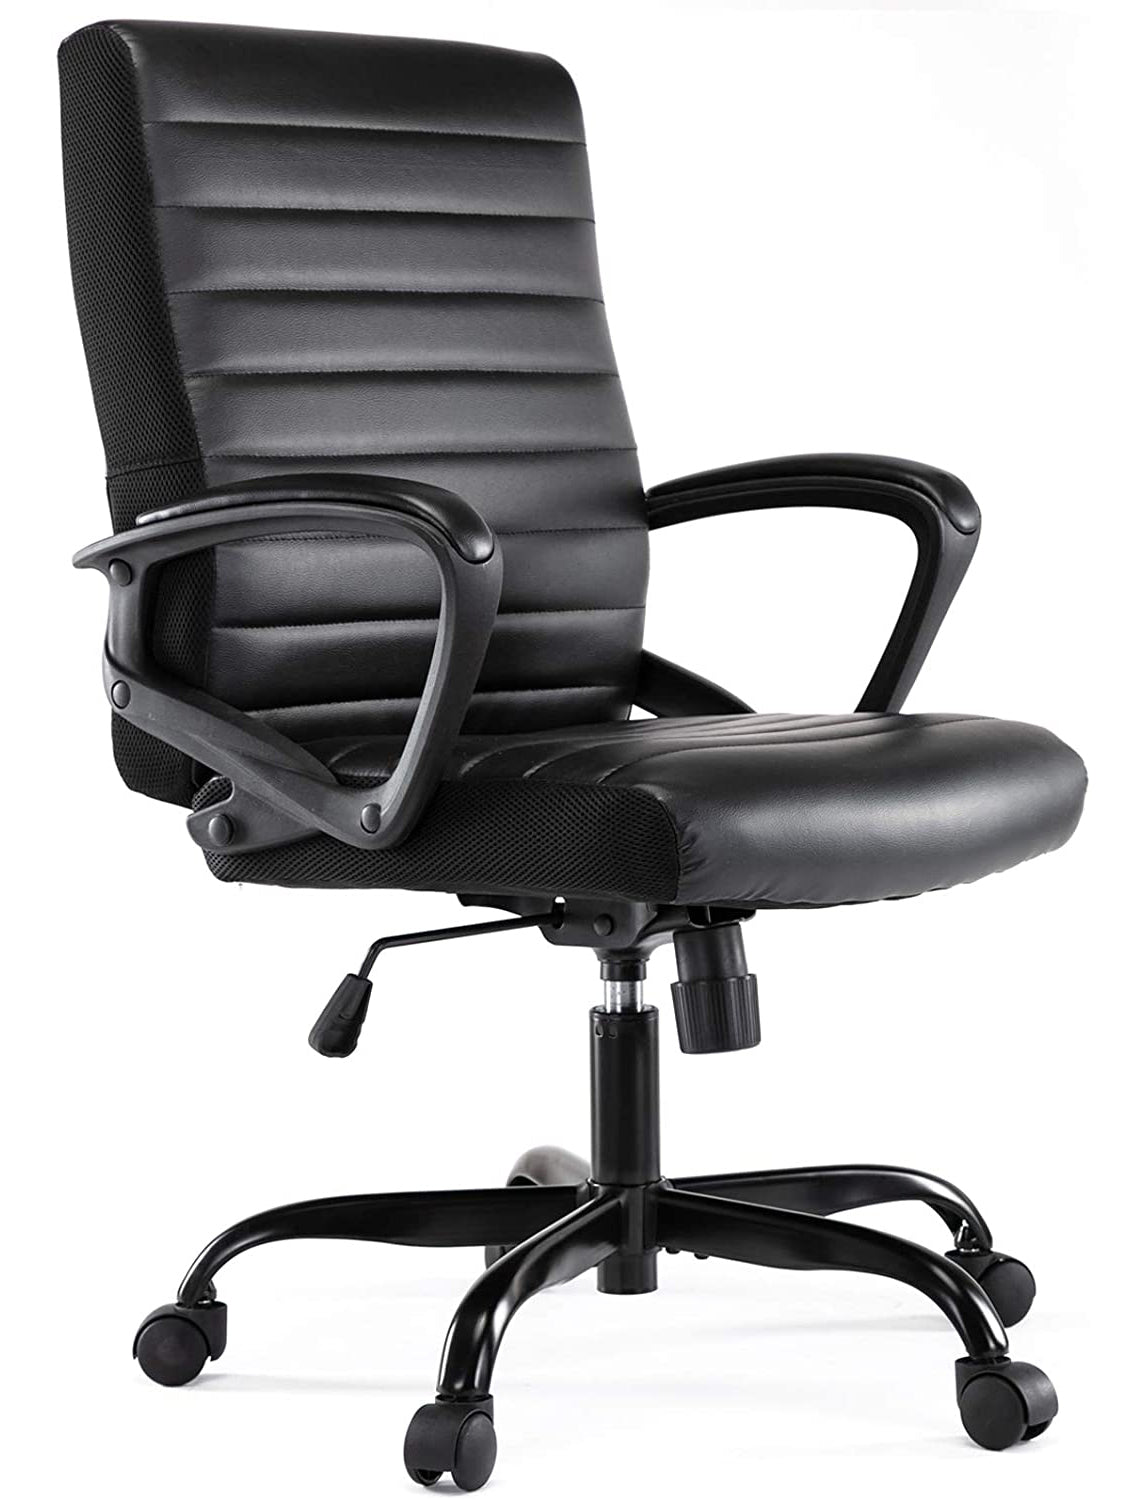 SMUGDESK Ergonomic Office Chair PU Leather Desk Executive Adjustable Task Chair Black